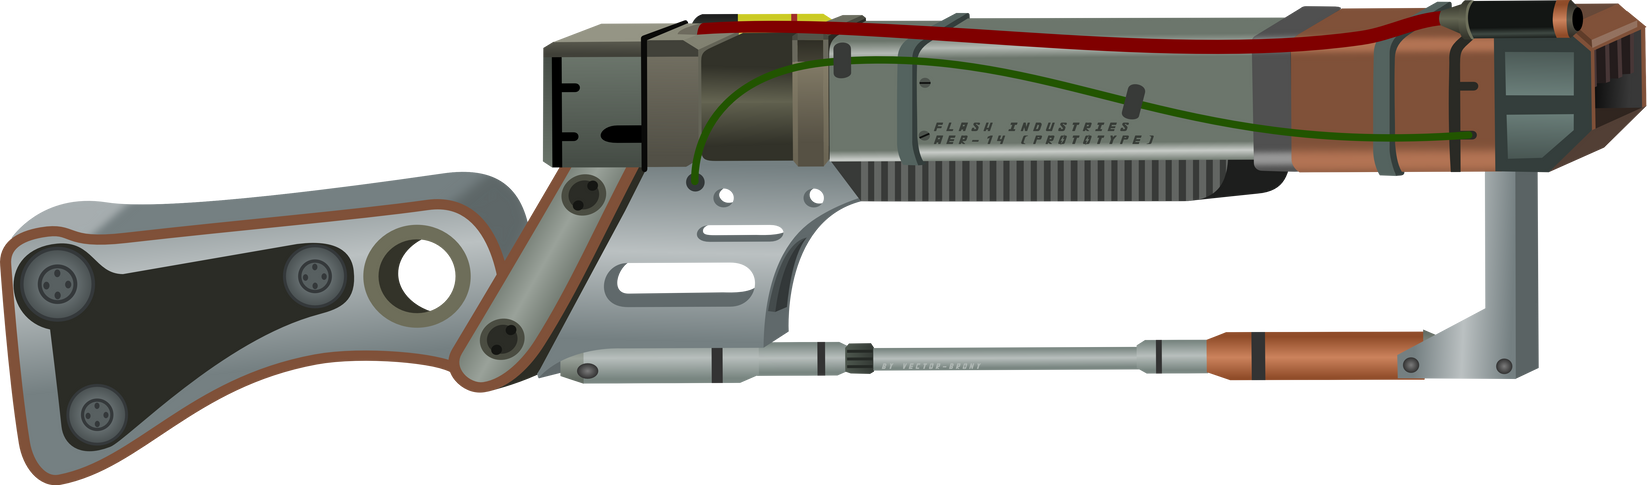 aer 14 prototype leo rifle project horizons by vector brony on